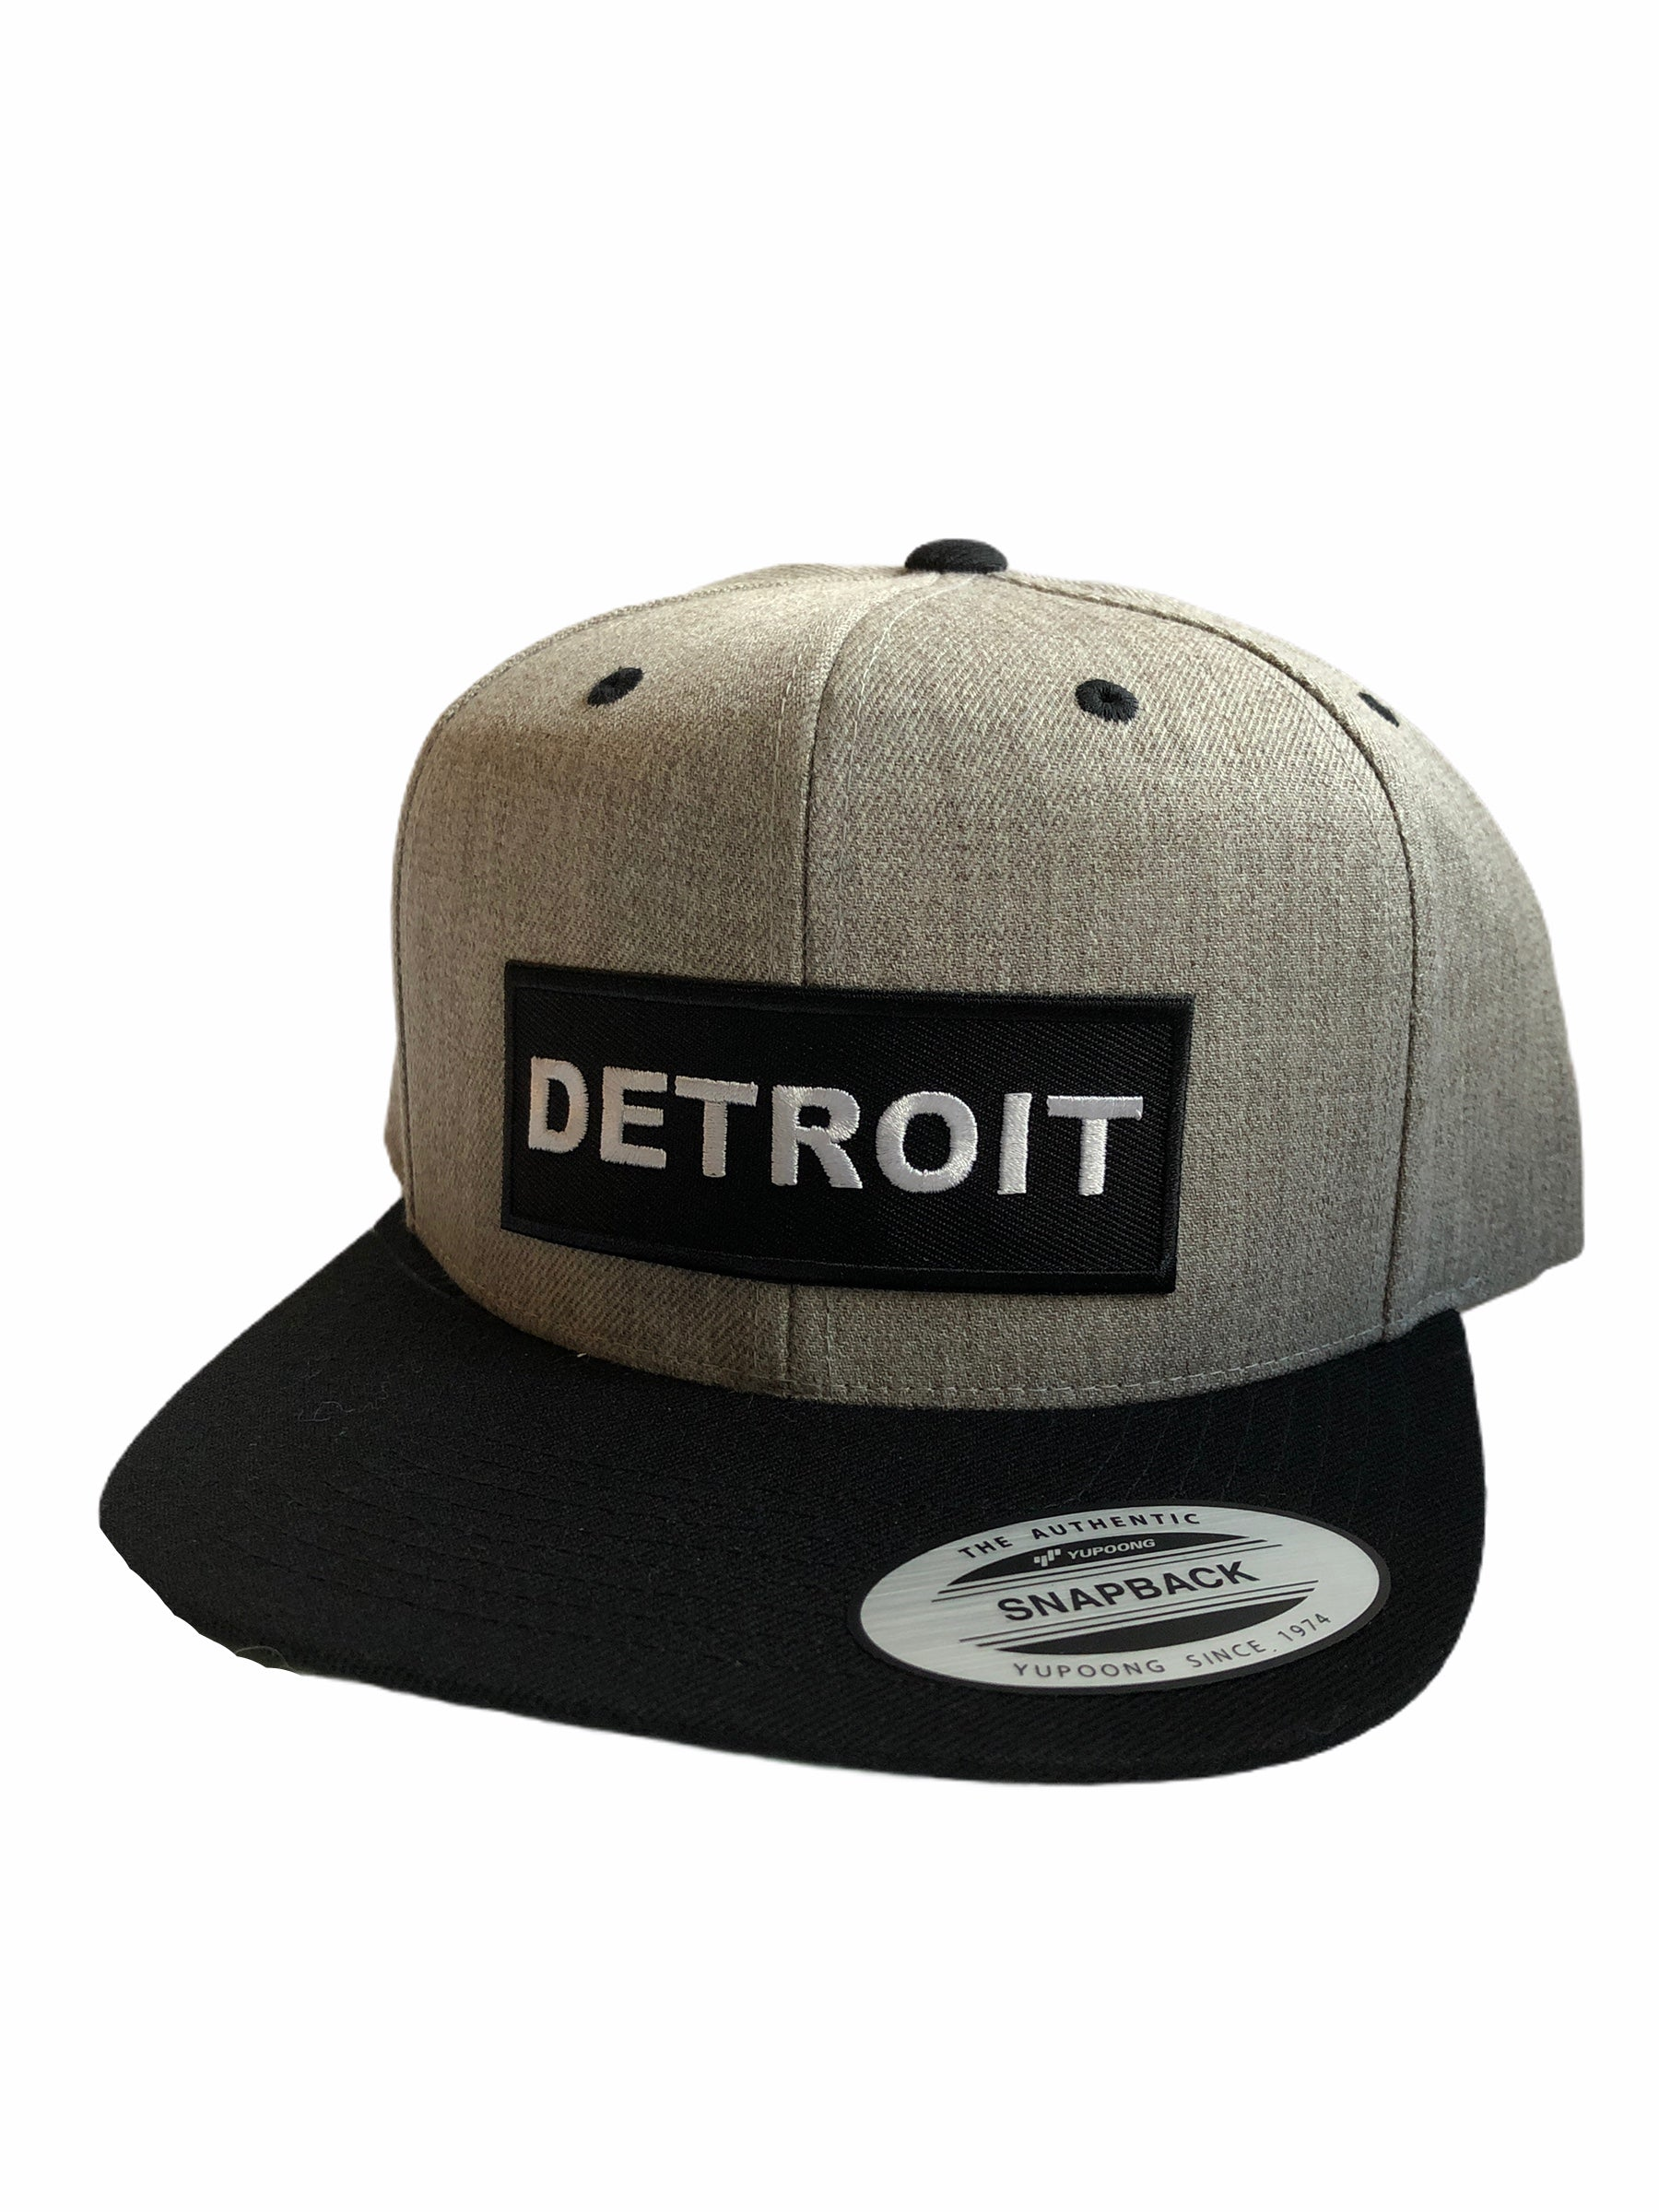 Detroit Premium Snapback Hat / Gray + Black - Pure Detroit